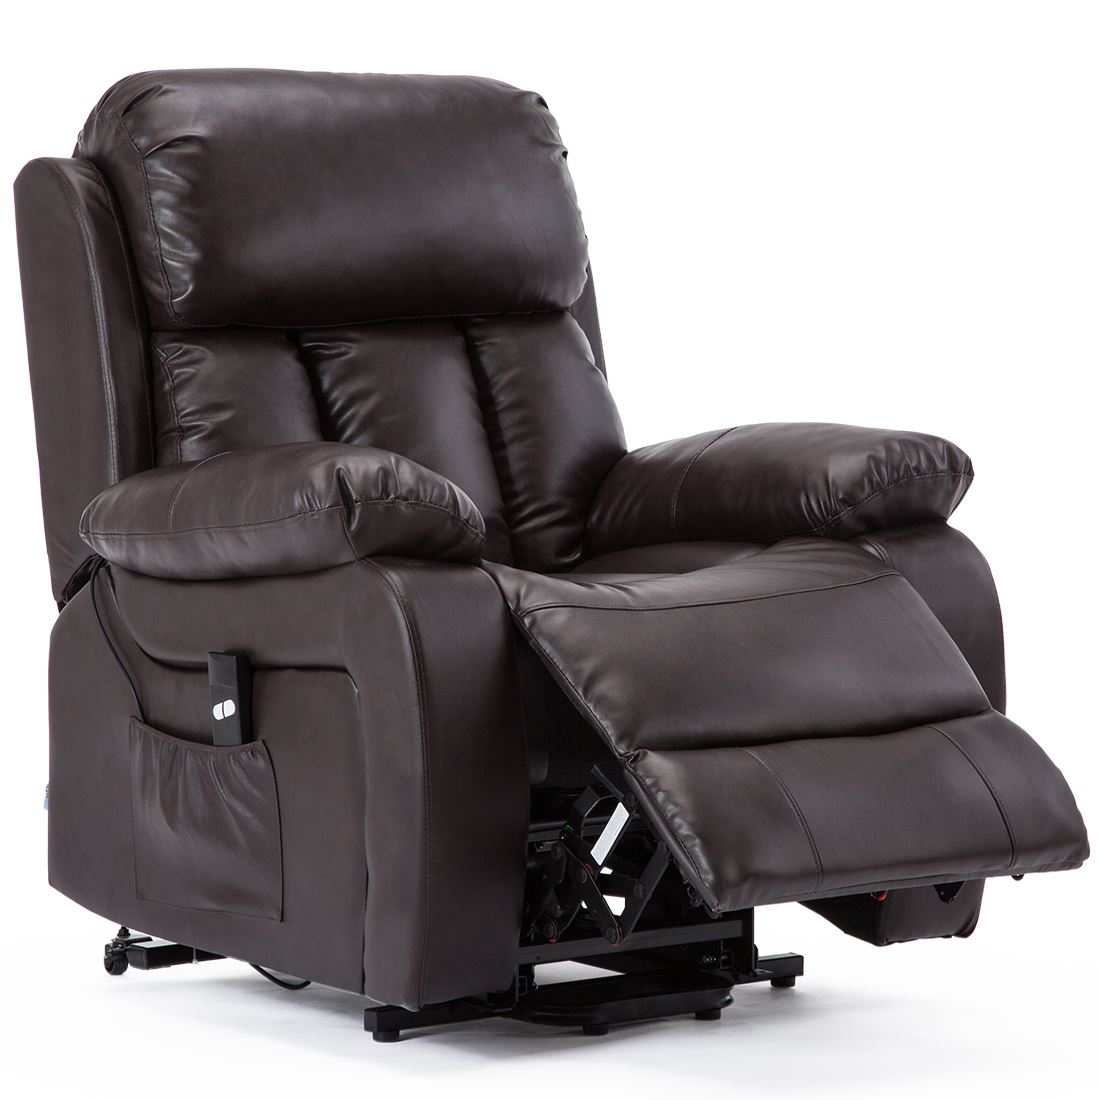 CHESTER-ELECTRIC-RISE-LEATHER-RECLINER-POWER-ARMCHAIR-HEATED-MASSAGE-SOFA-CHAIR thumbnail 12